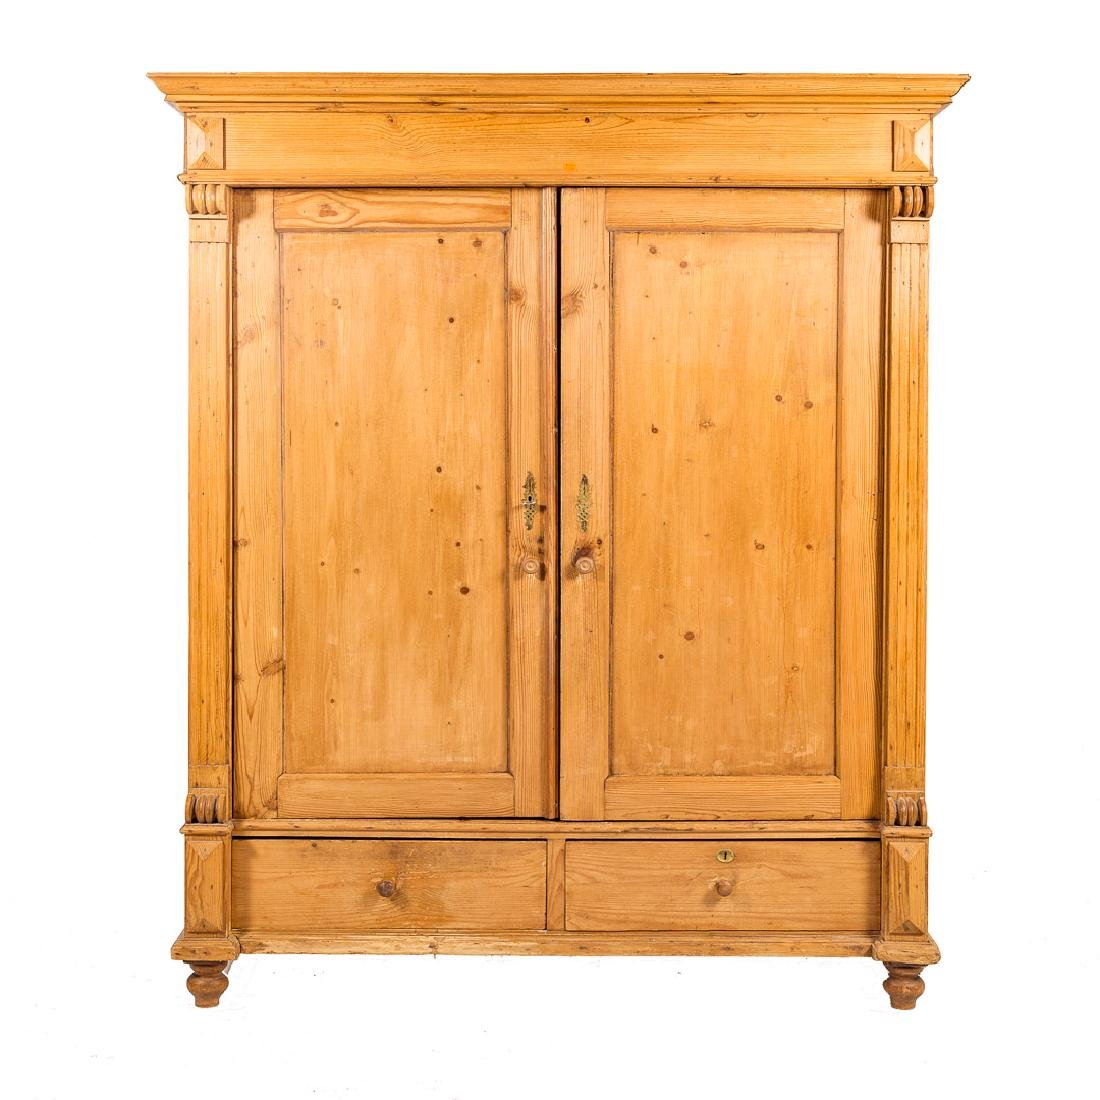 English scrubbed pine armoire,